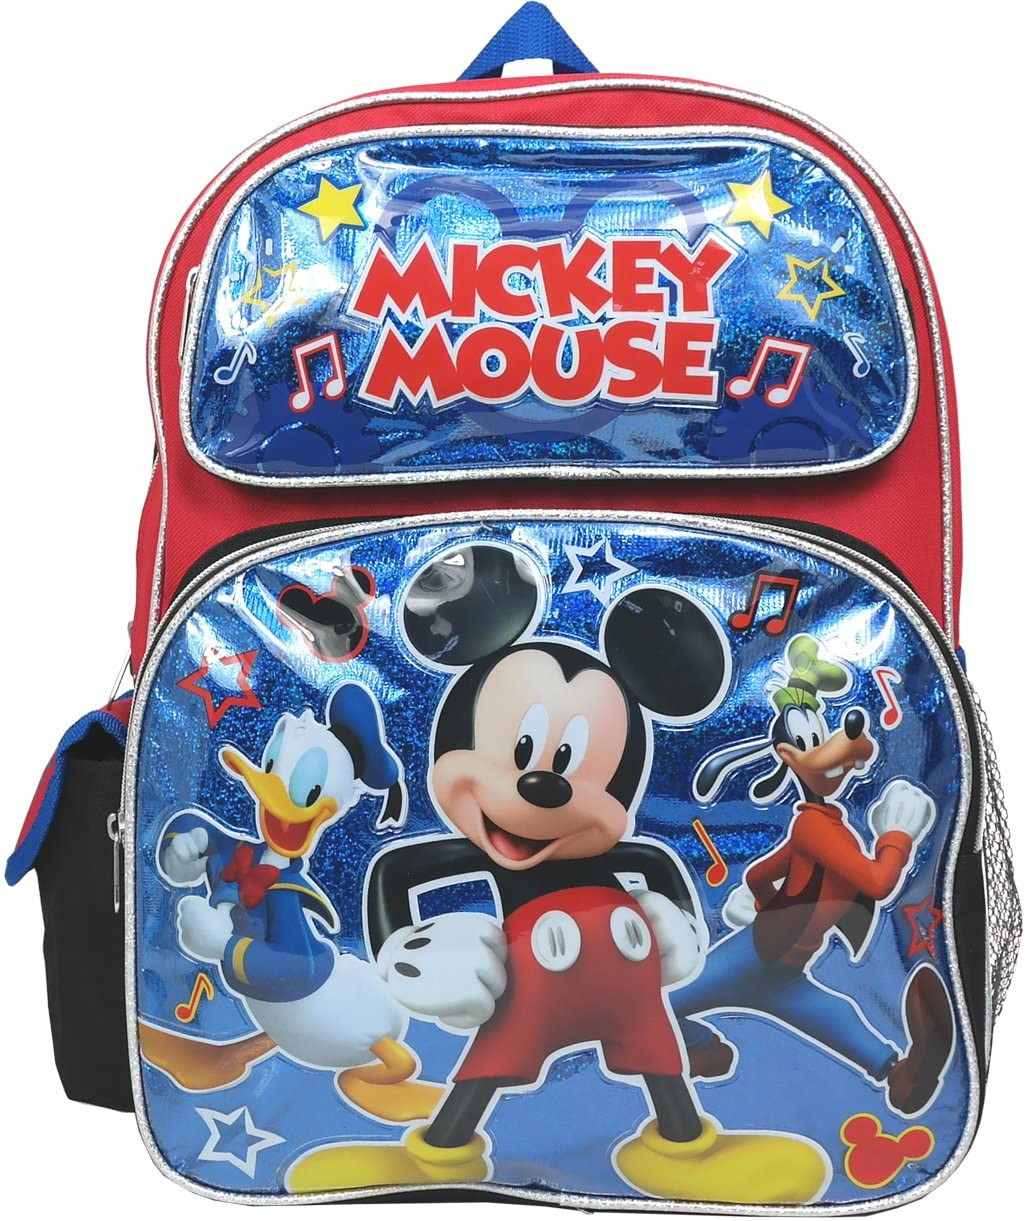 Mickey Mouse w/ Donald and Goofy 16 Inch Large Backpack